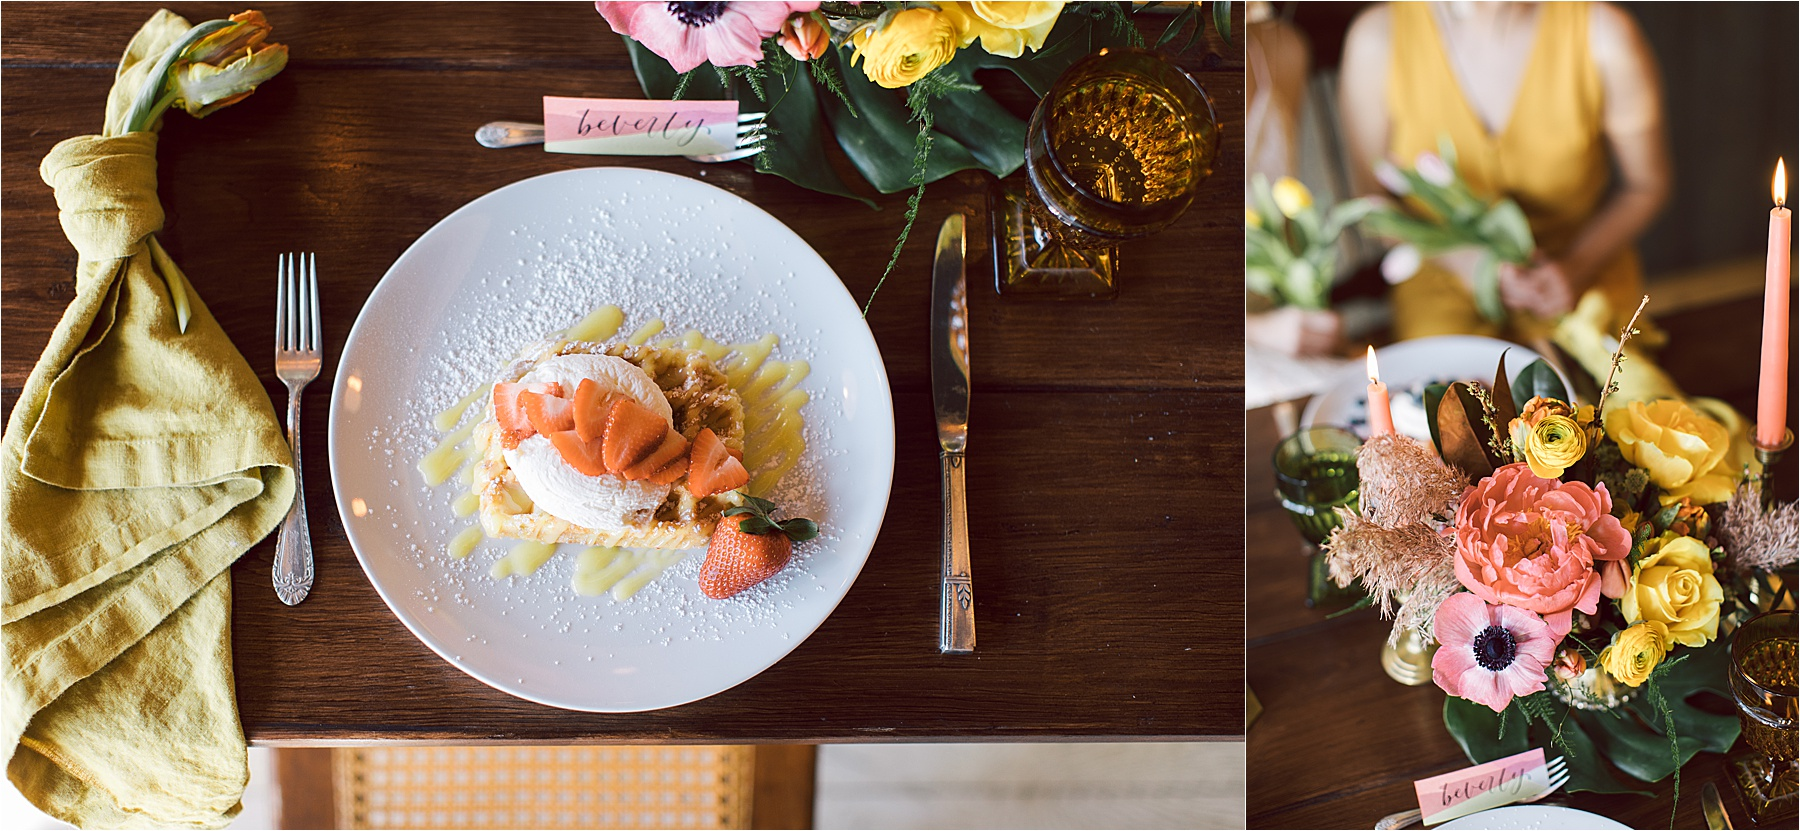 Florals:  The Pink Peony  / Waffles:  Press Waffle Co.  / Table + Accessories:  Velvet Rentals  / Calligraphy:  MJ Creative Co.  / Macrame:  Wannabe West Coast